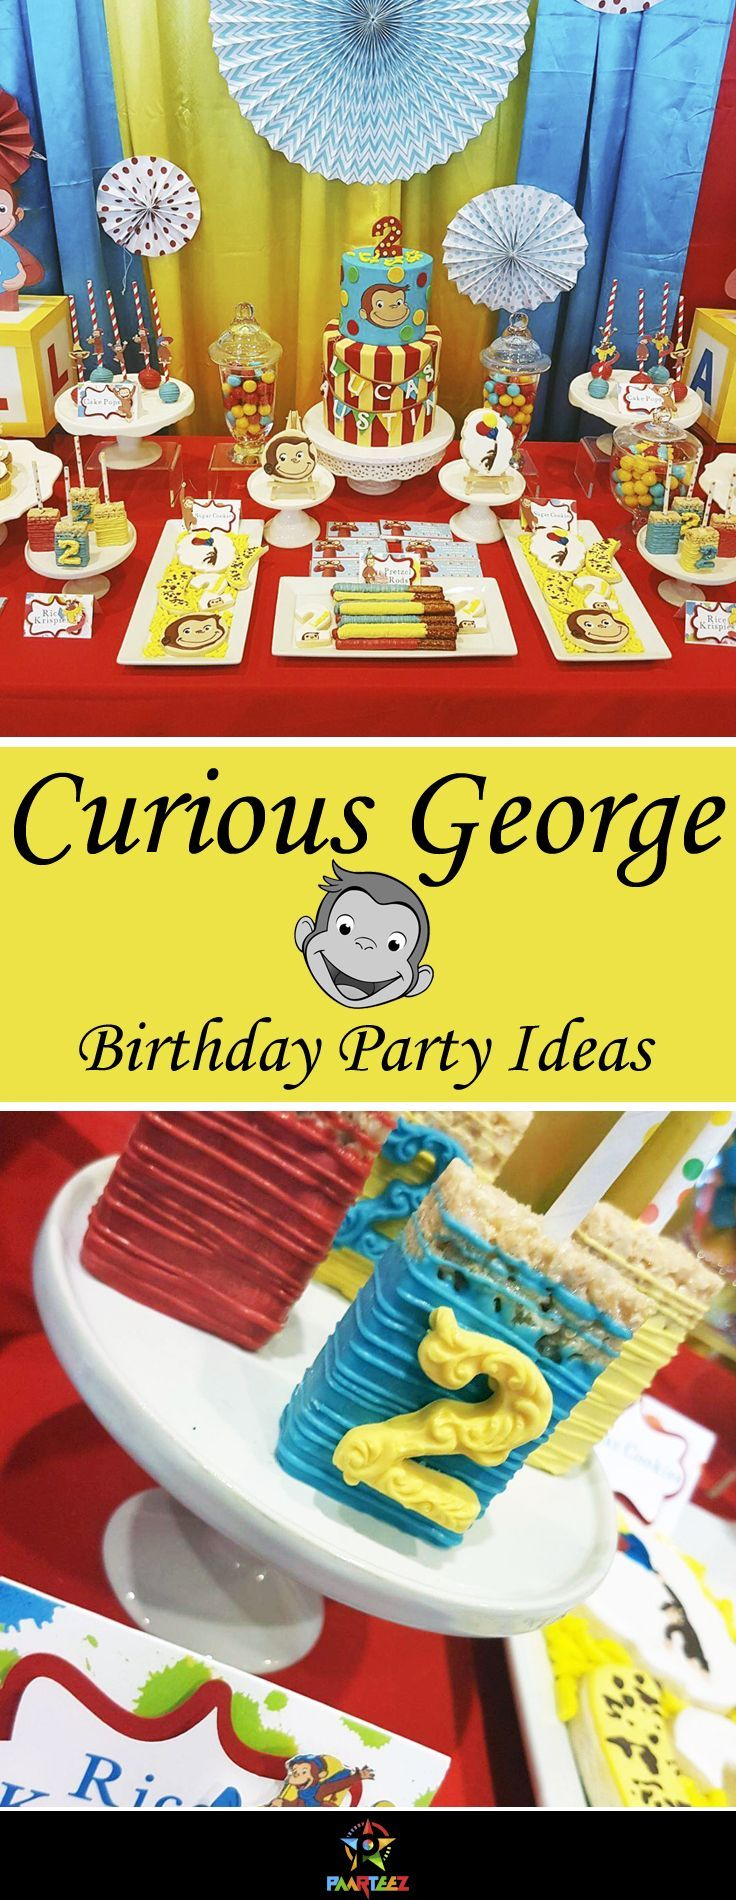 A Fun Birthday Party Idea For Boys Based On Famous Cartoon Character Curious George Curious George Birthday Curious George Birthday Party Curious George Party